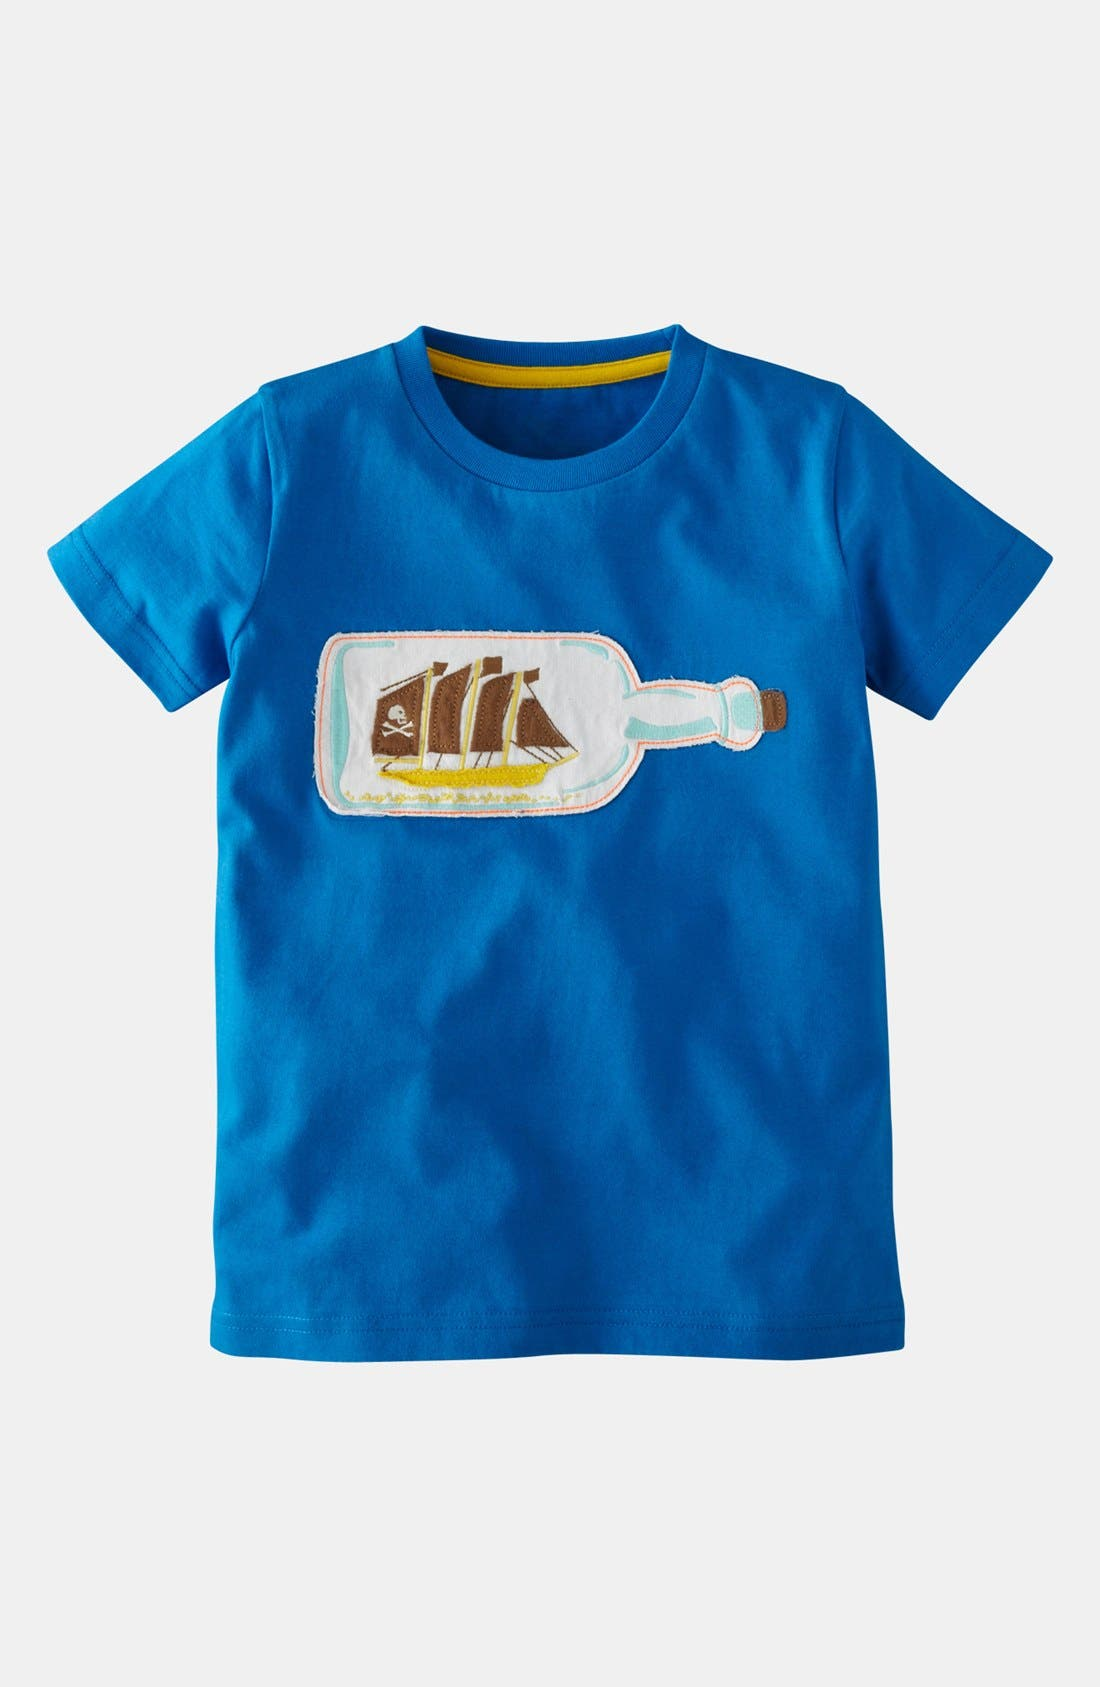 Main Image - Mini Boden 'Pirate' T-Shirt (Toddler Boys)